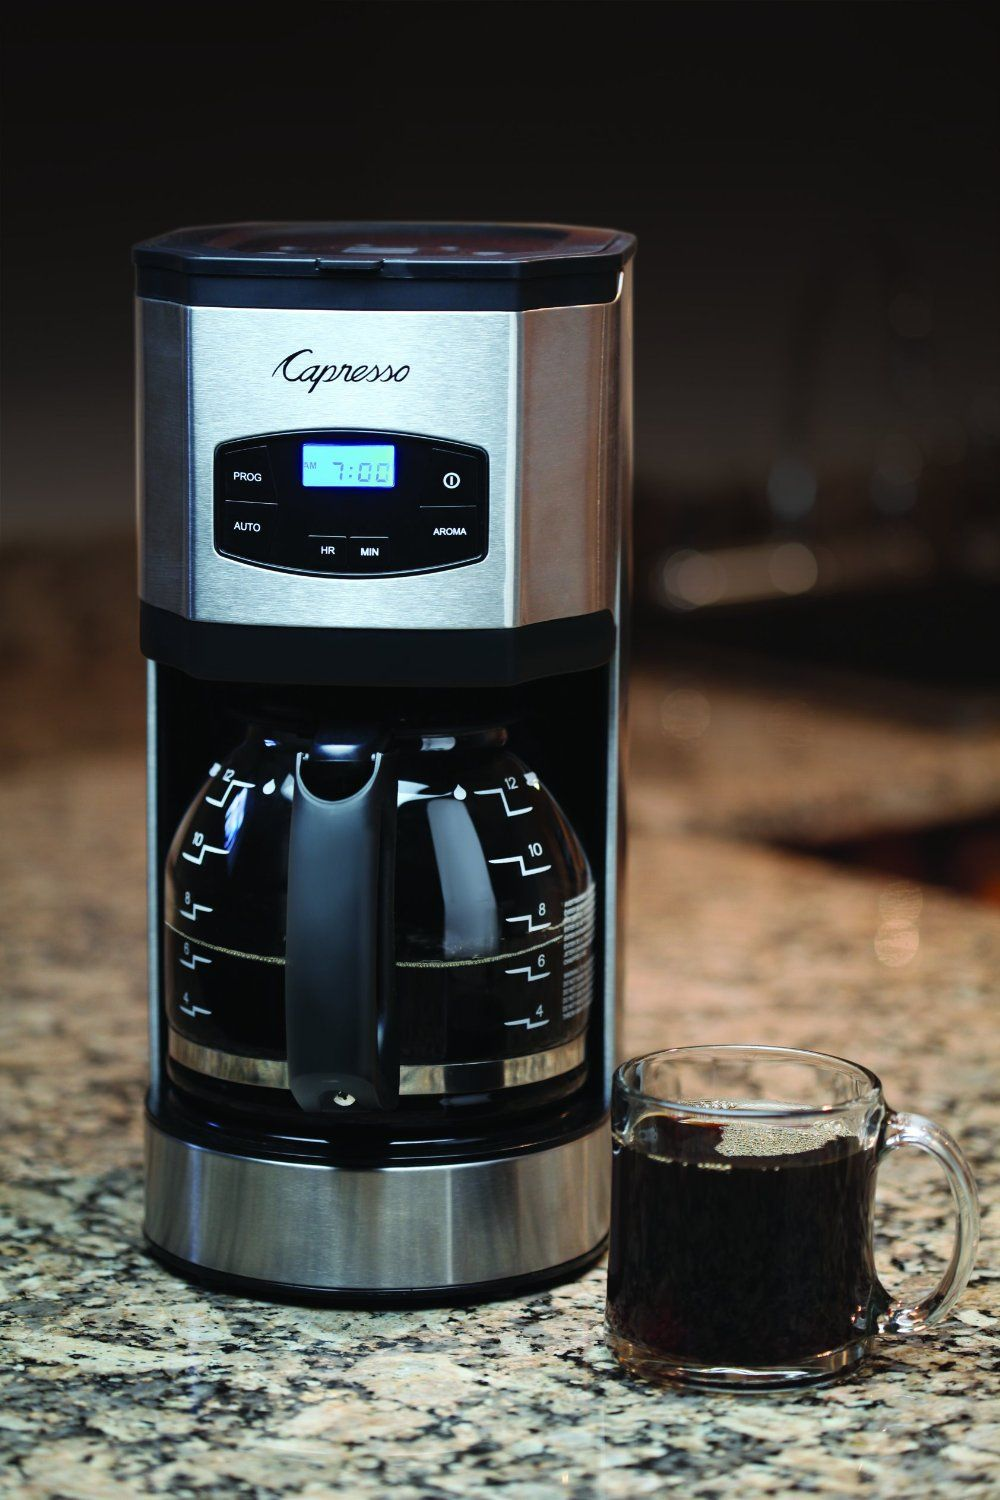 Capresso SG120 12Cup Stainless Steel Coffee Maker